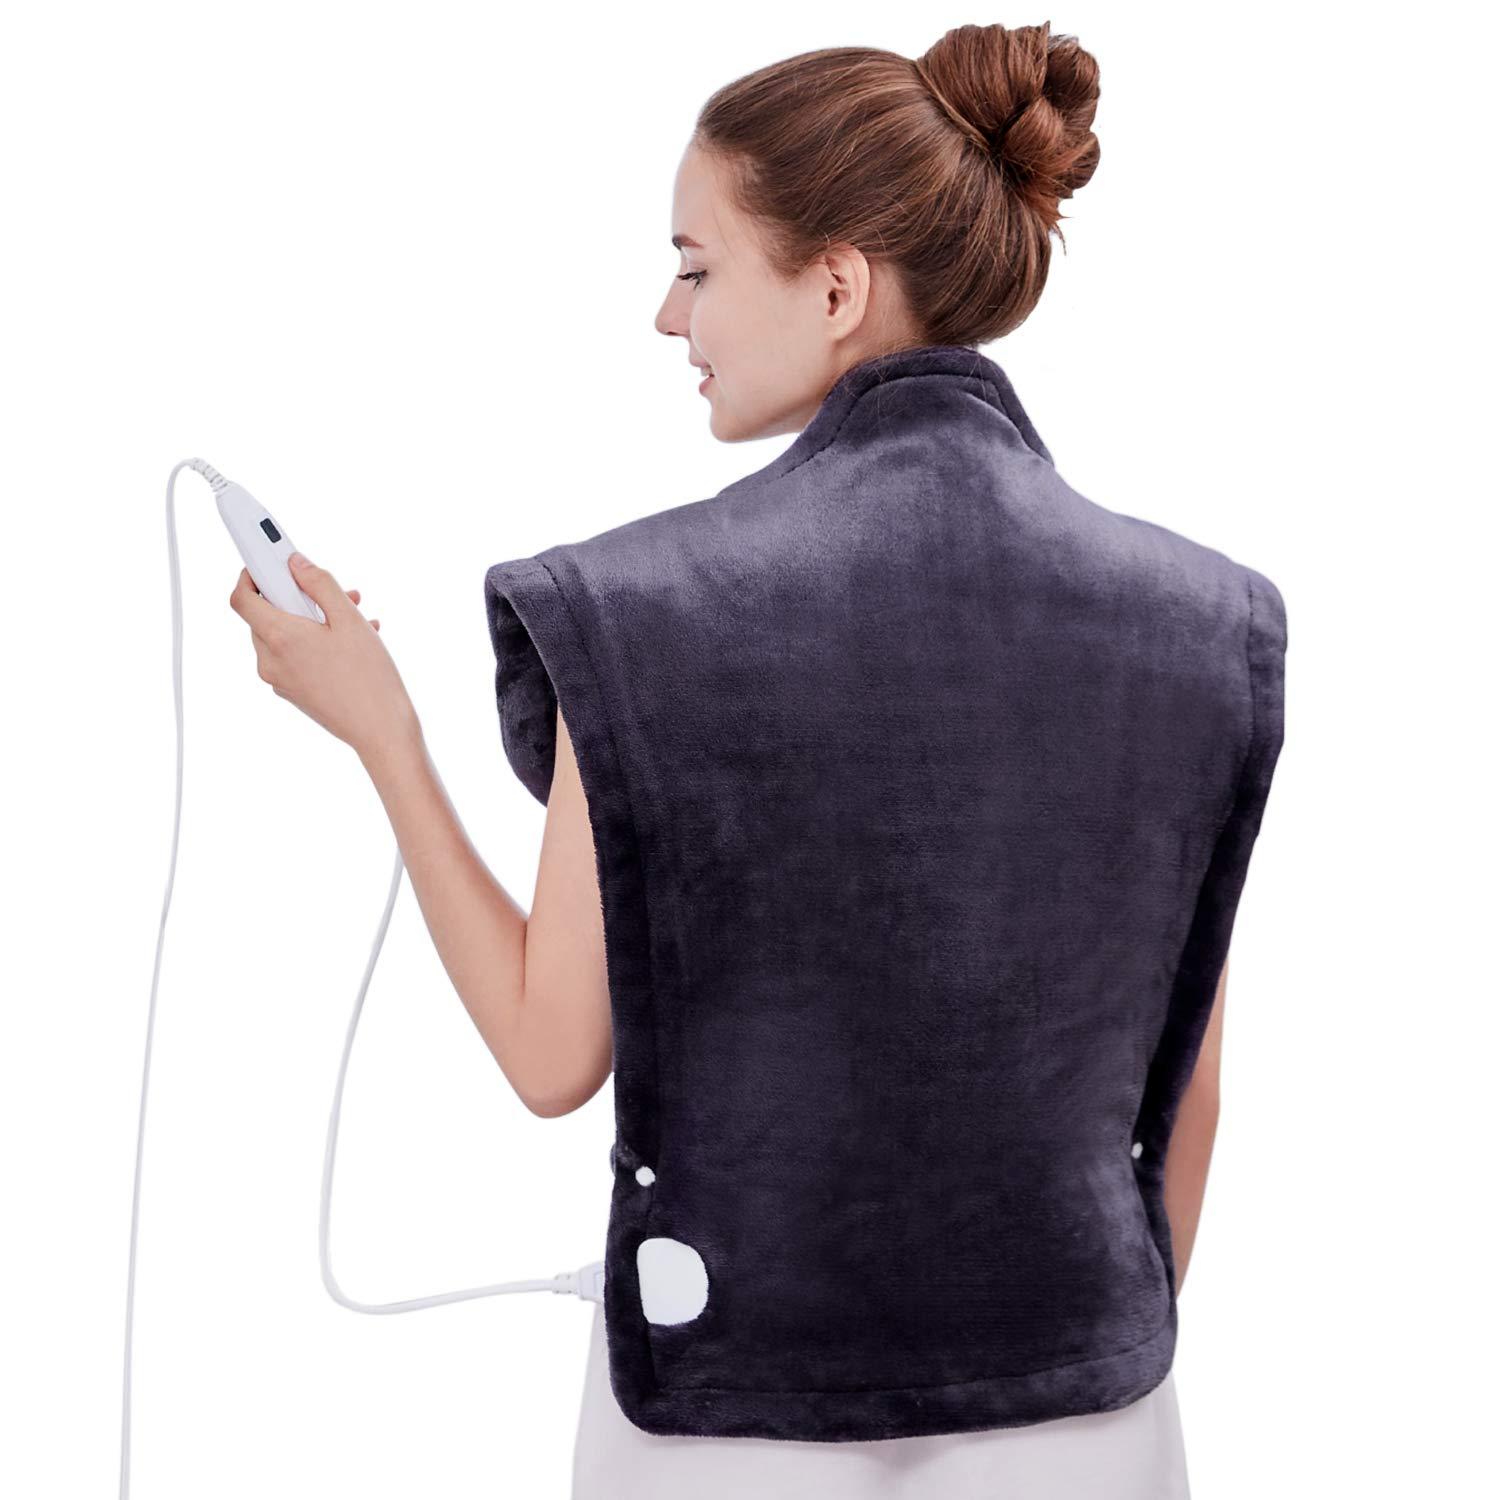 """Utaxo Heating Pad Wrap, for Neck Shoulders Whole Back Pain Relief, Soothing Muscle Pain and Tension Relief Therapy, 6 Electric Temperature Options, 25 x 32"""", XXX-Large"""